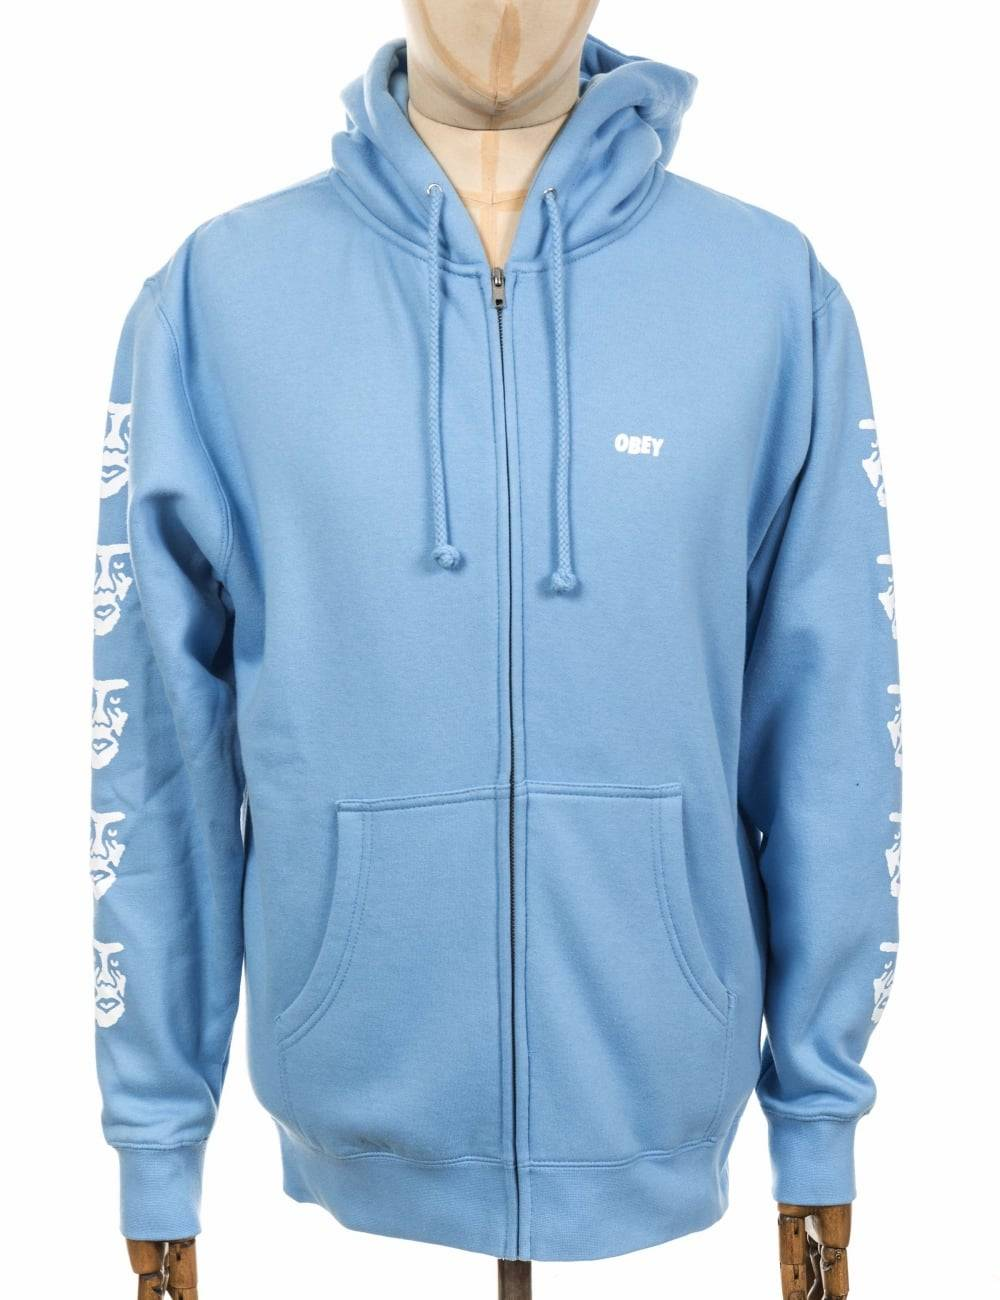 Obey Clothing Creeper 2 Zip Hooded Sweat - Powder Blue Size: Large, Co